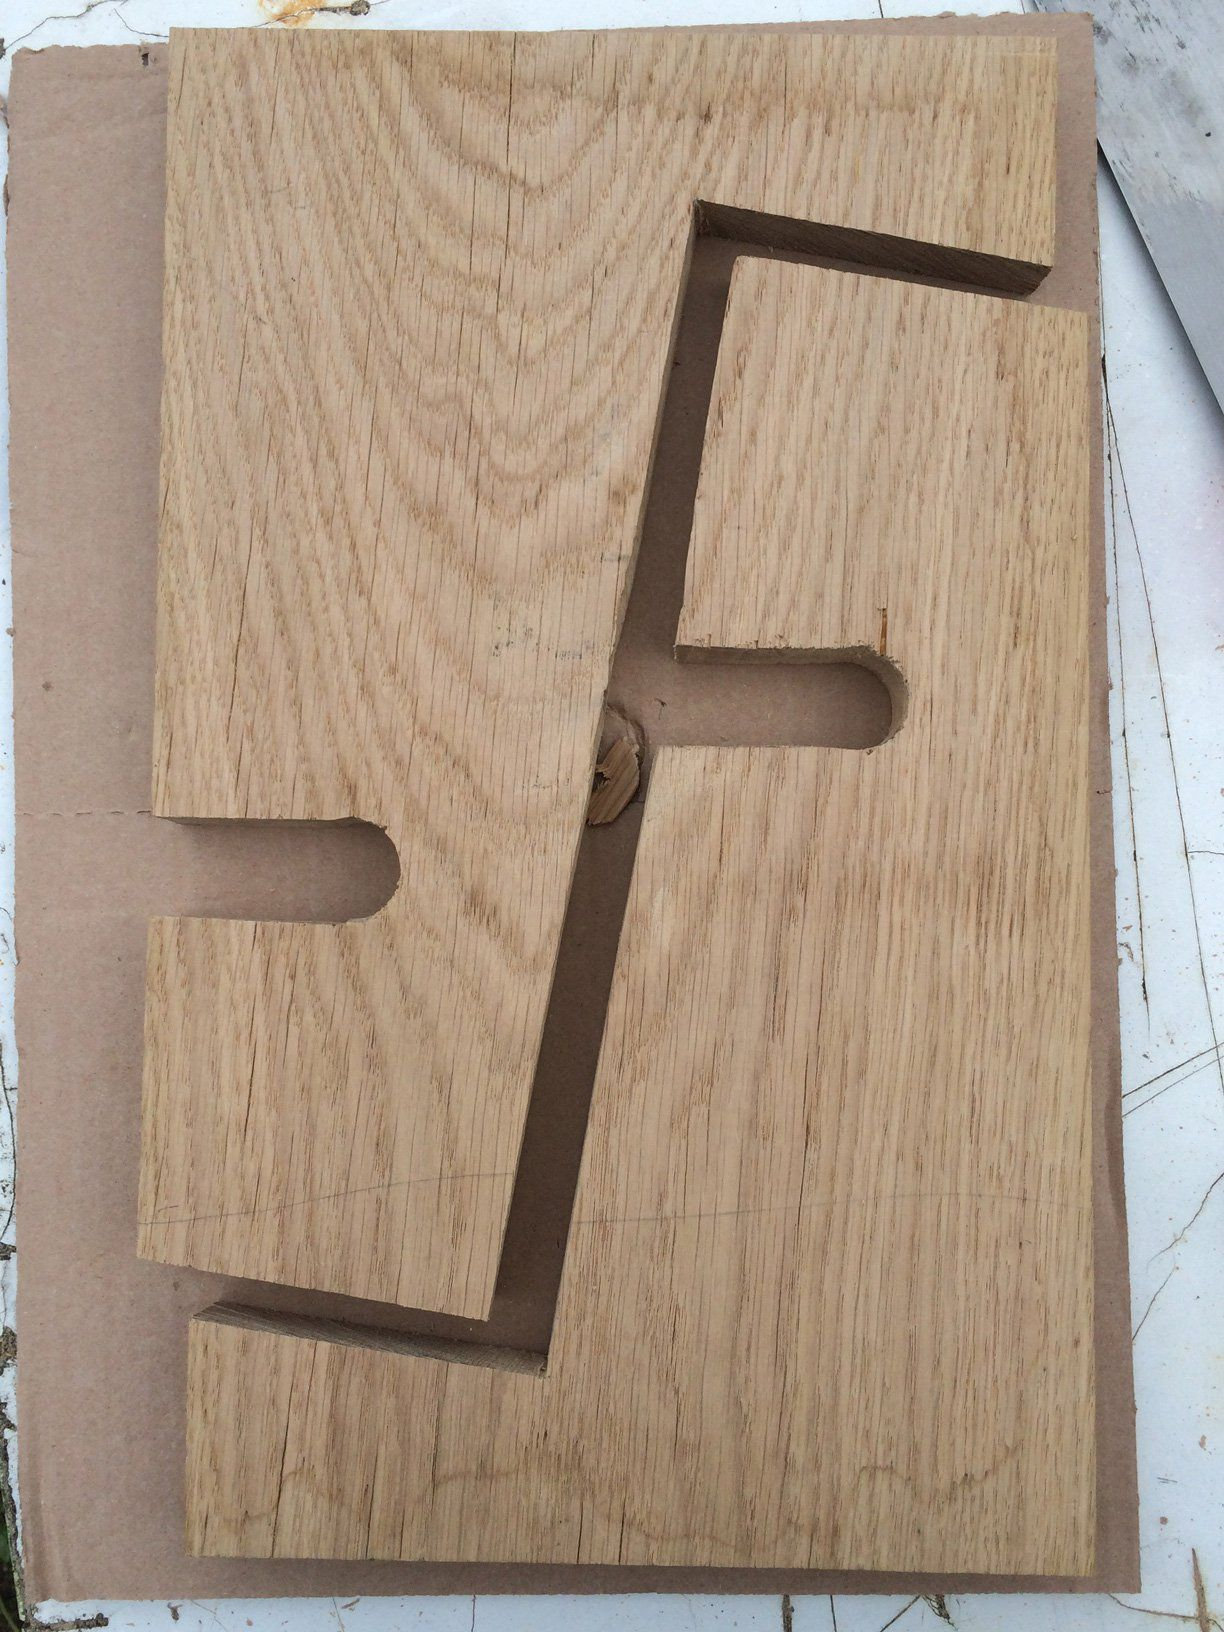 build this simple guitar stand from a single board of wood in 2019 for saigey. Black Bedroom Furniture Sets. Home Design Ideas